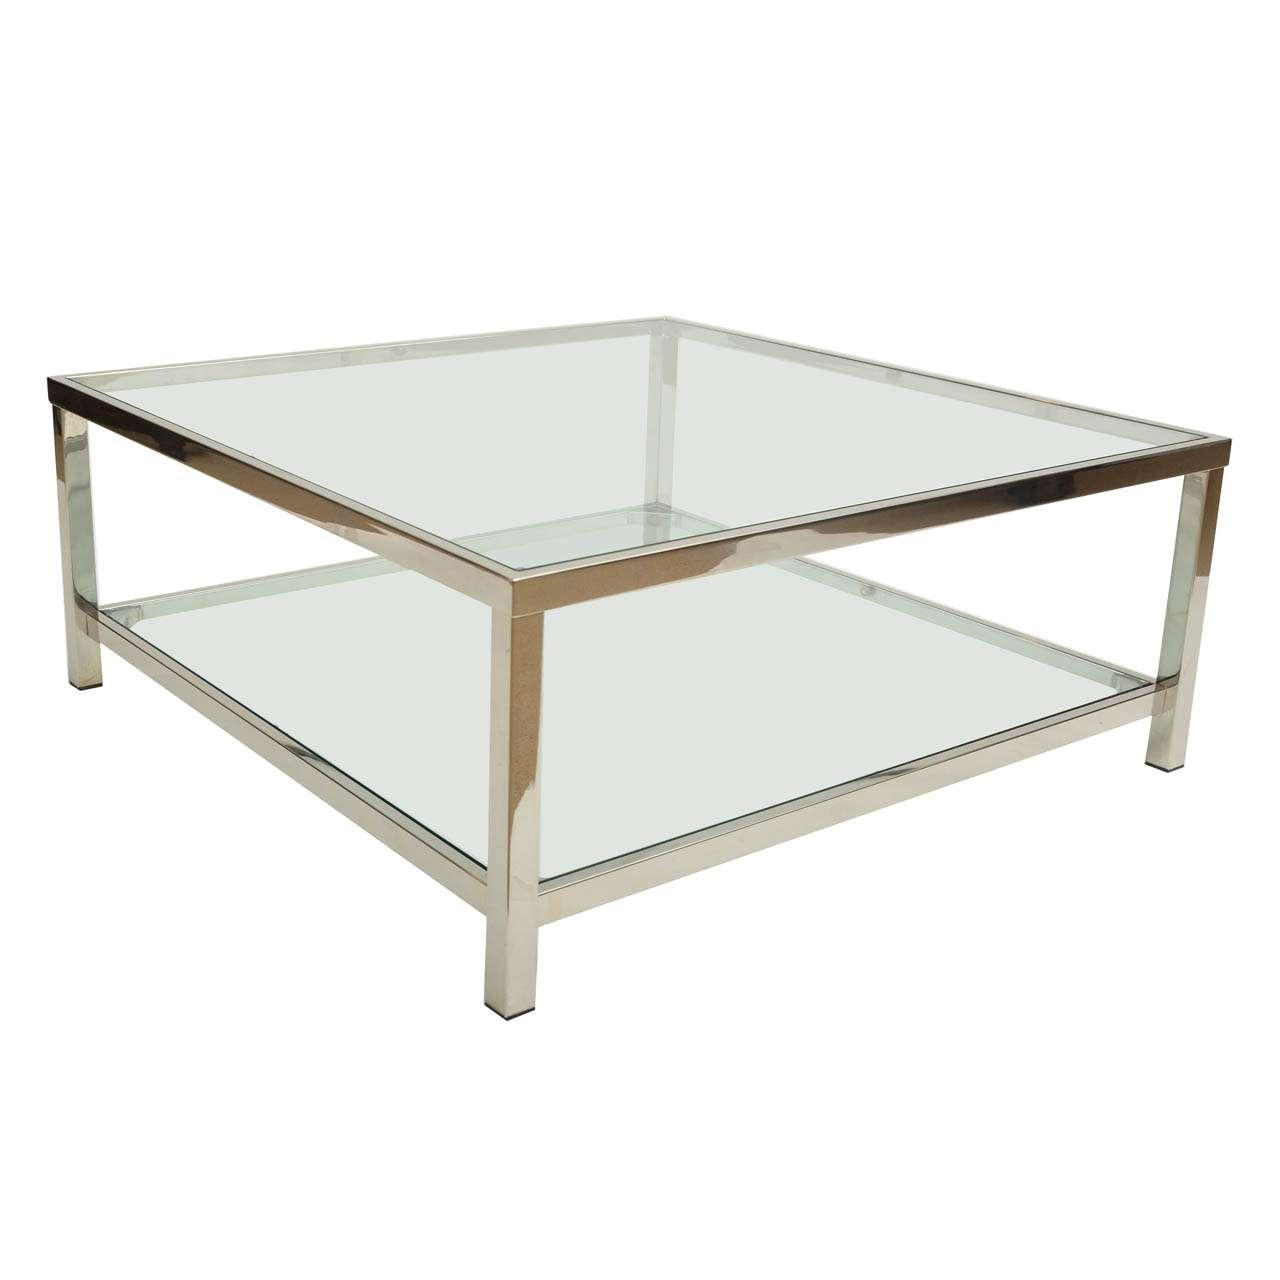 natal chrome and glass sofa table apartment size bed vancouver round coffee bindu bhatia astrology